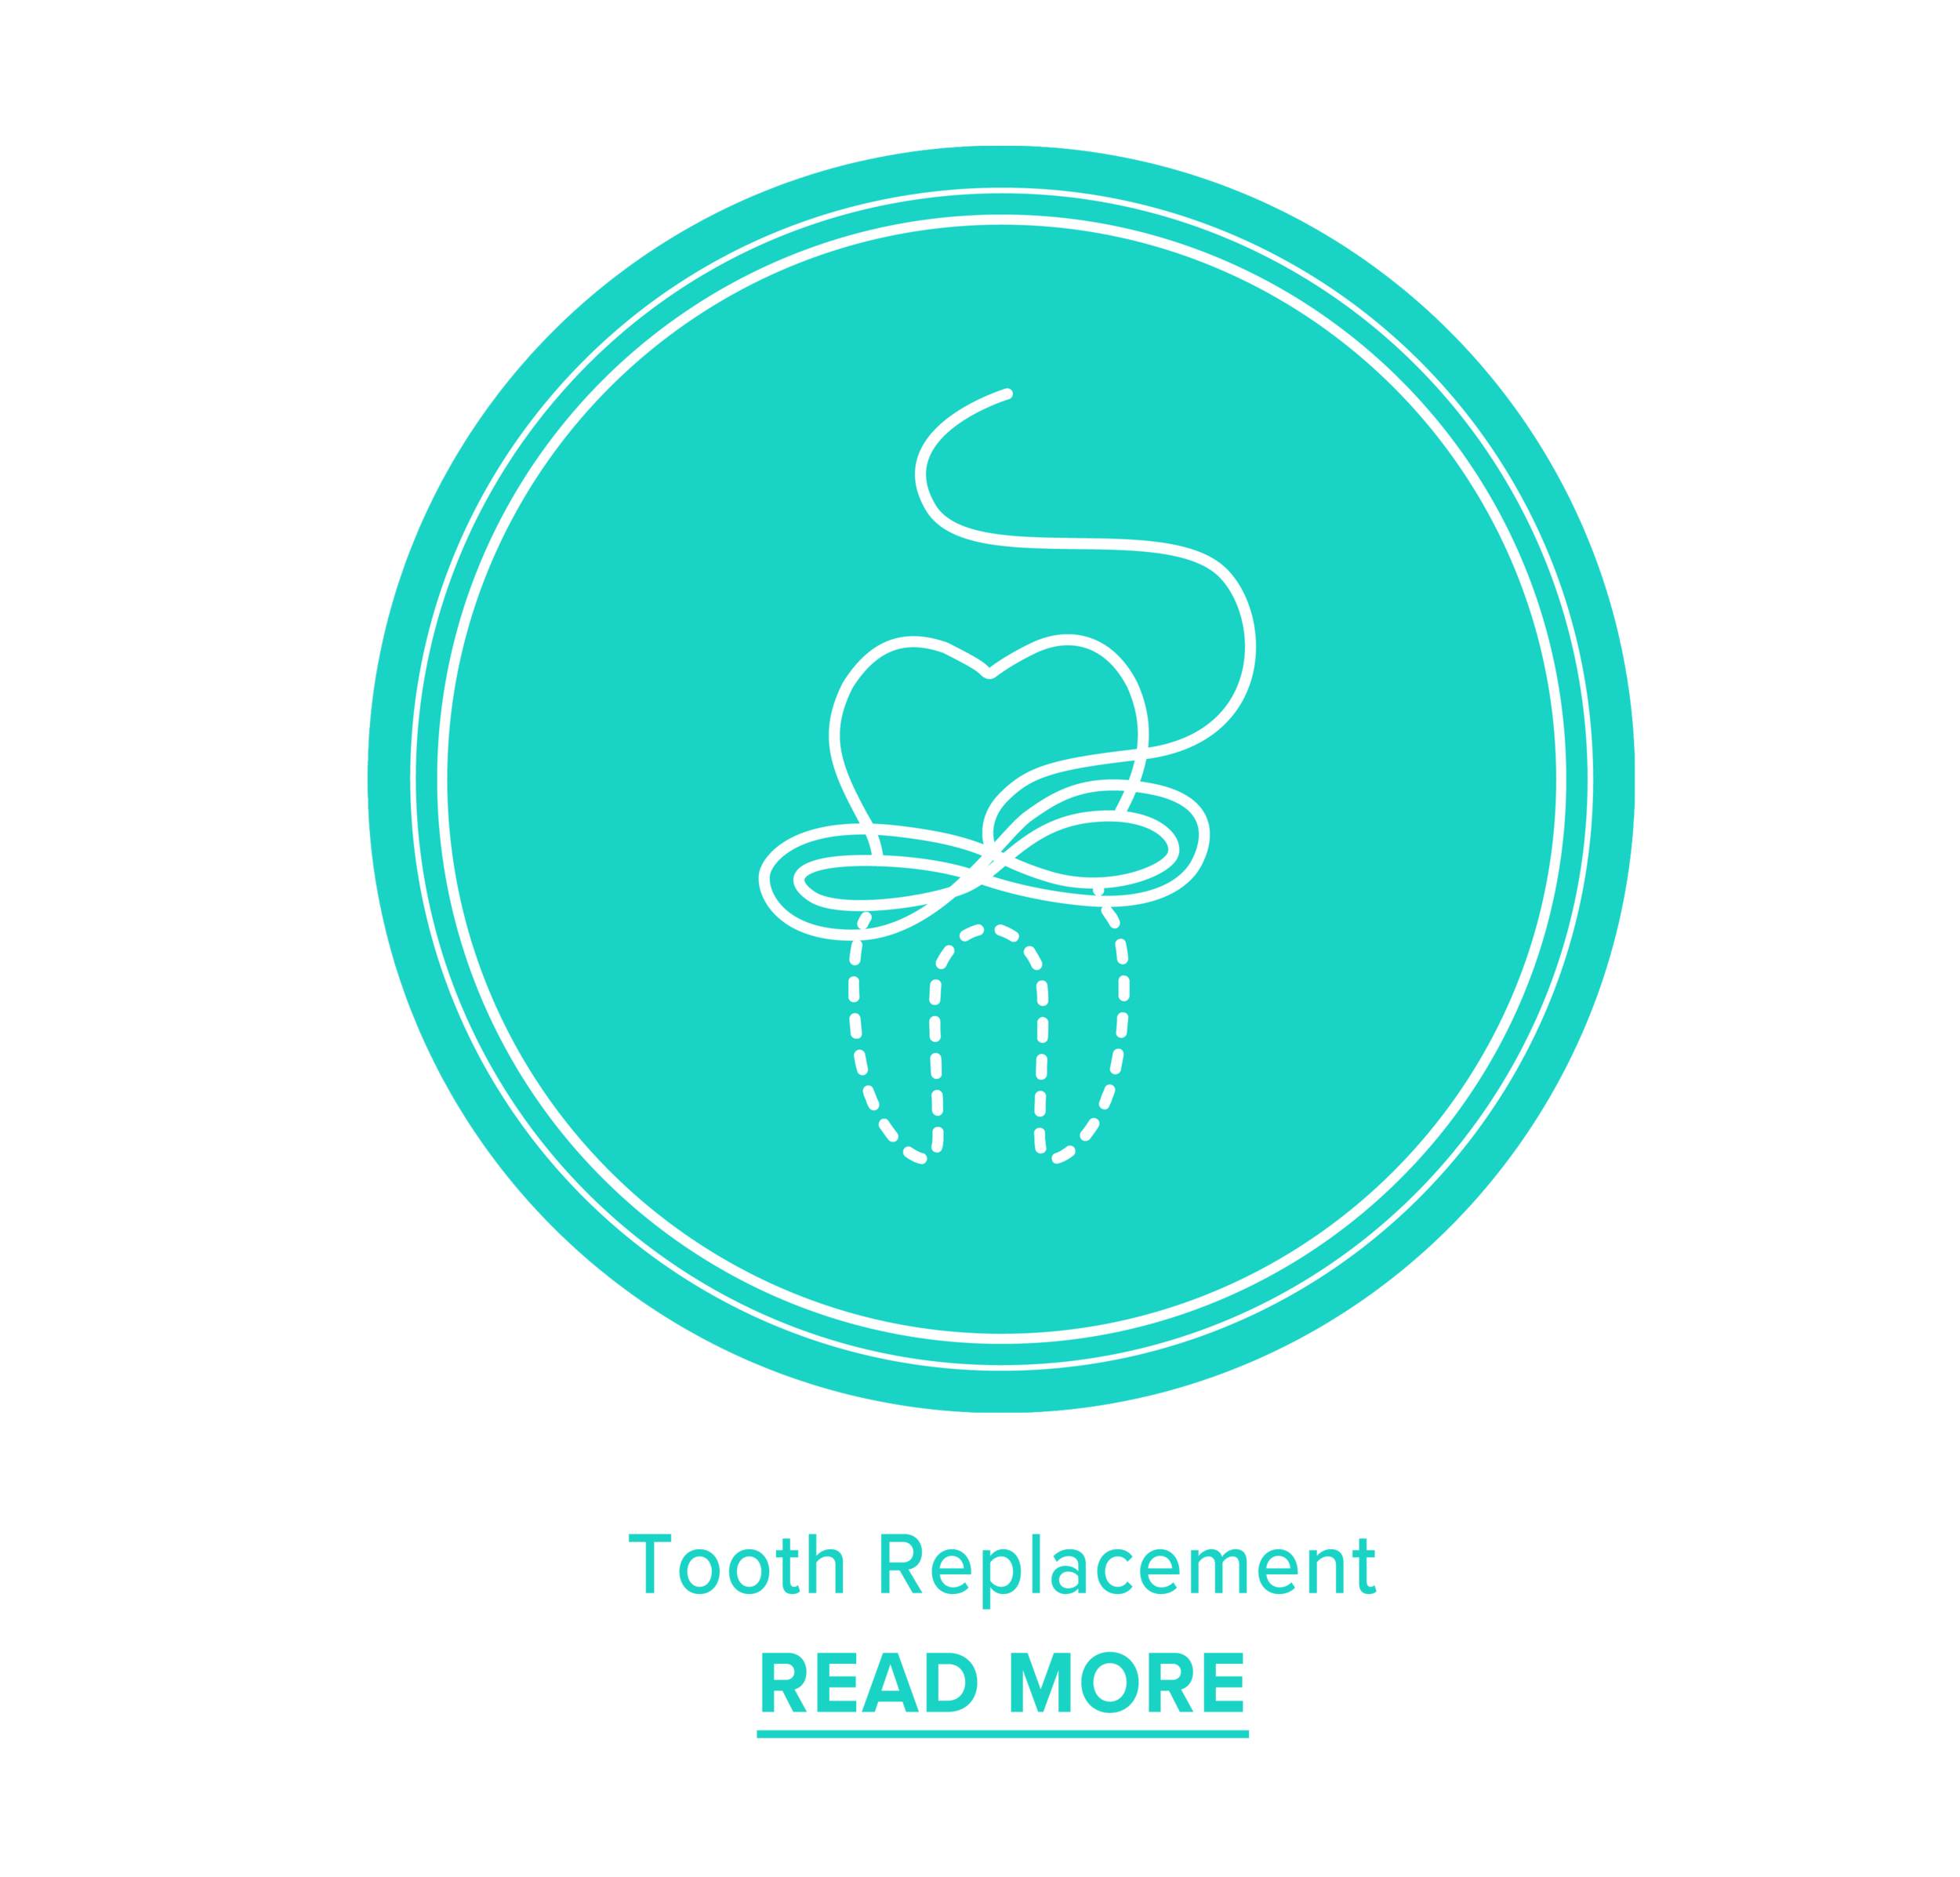 Tooth Replacement 2.20.38 pm.png